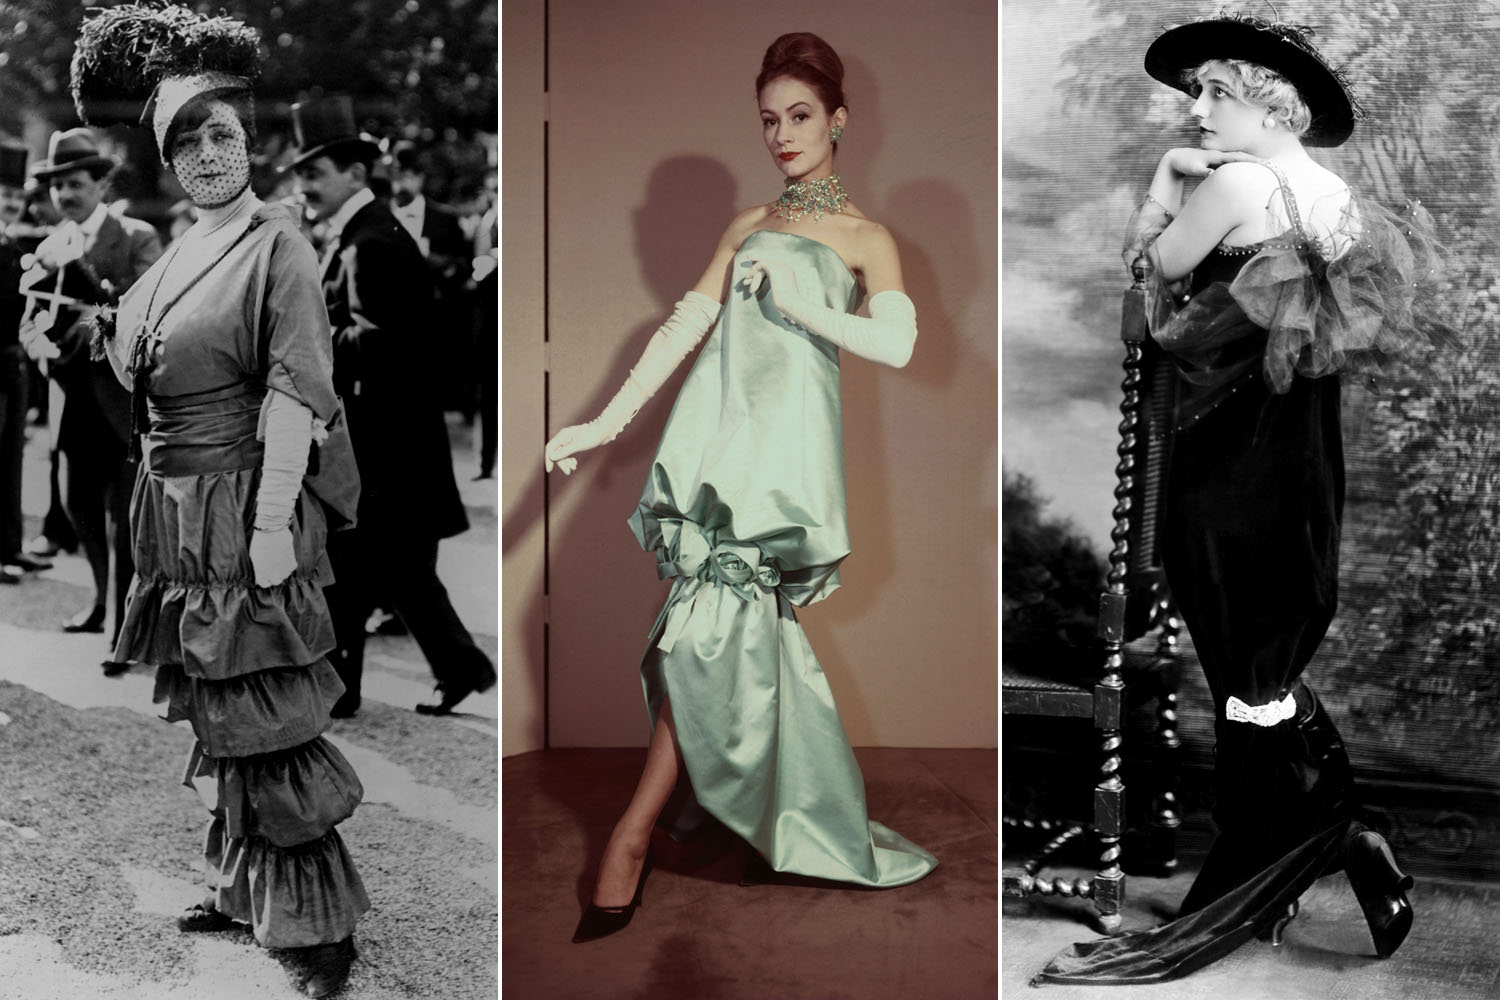 6 Weird Fashion Trends from History